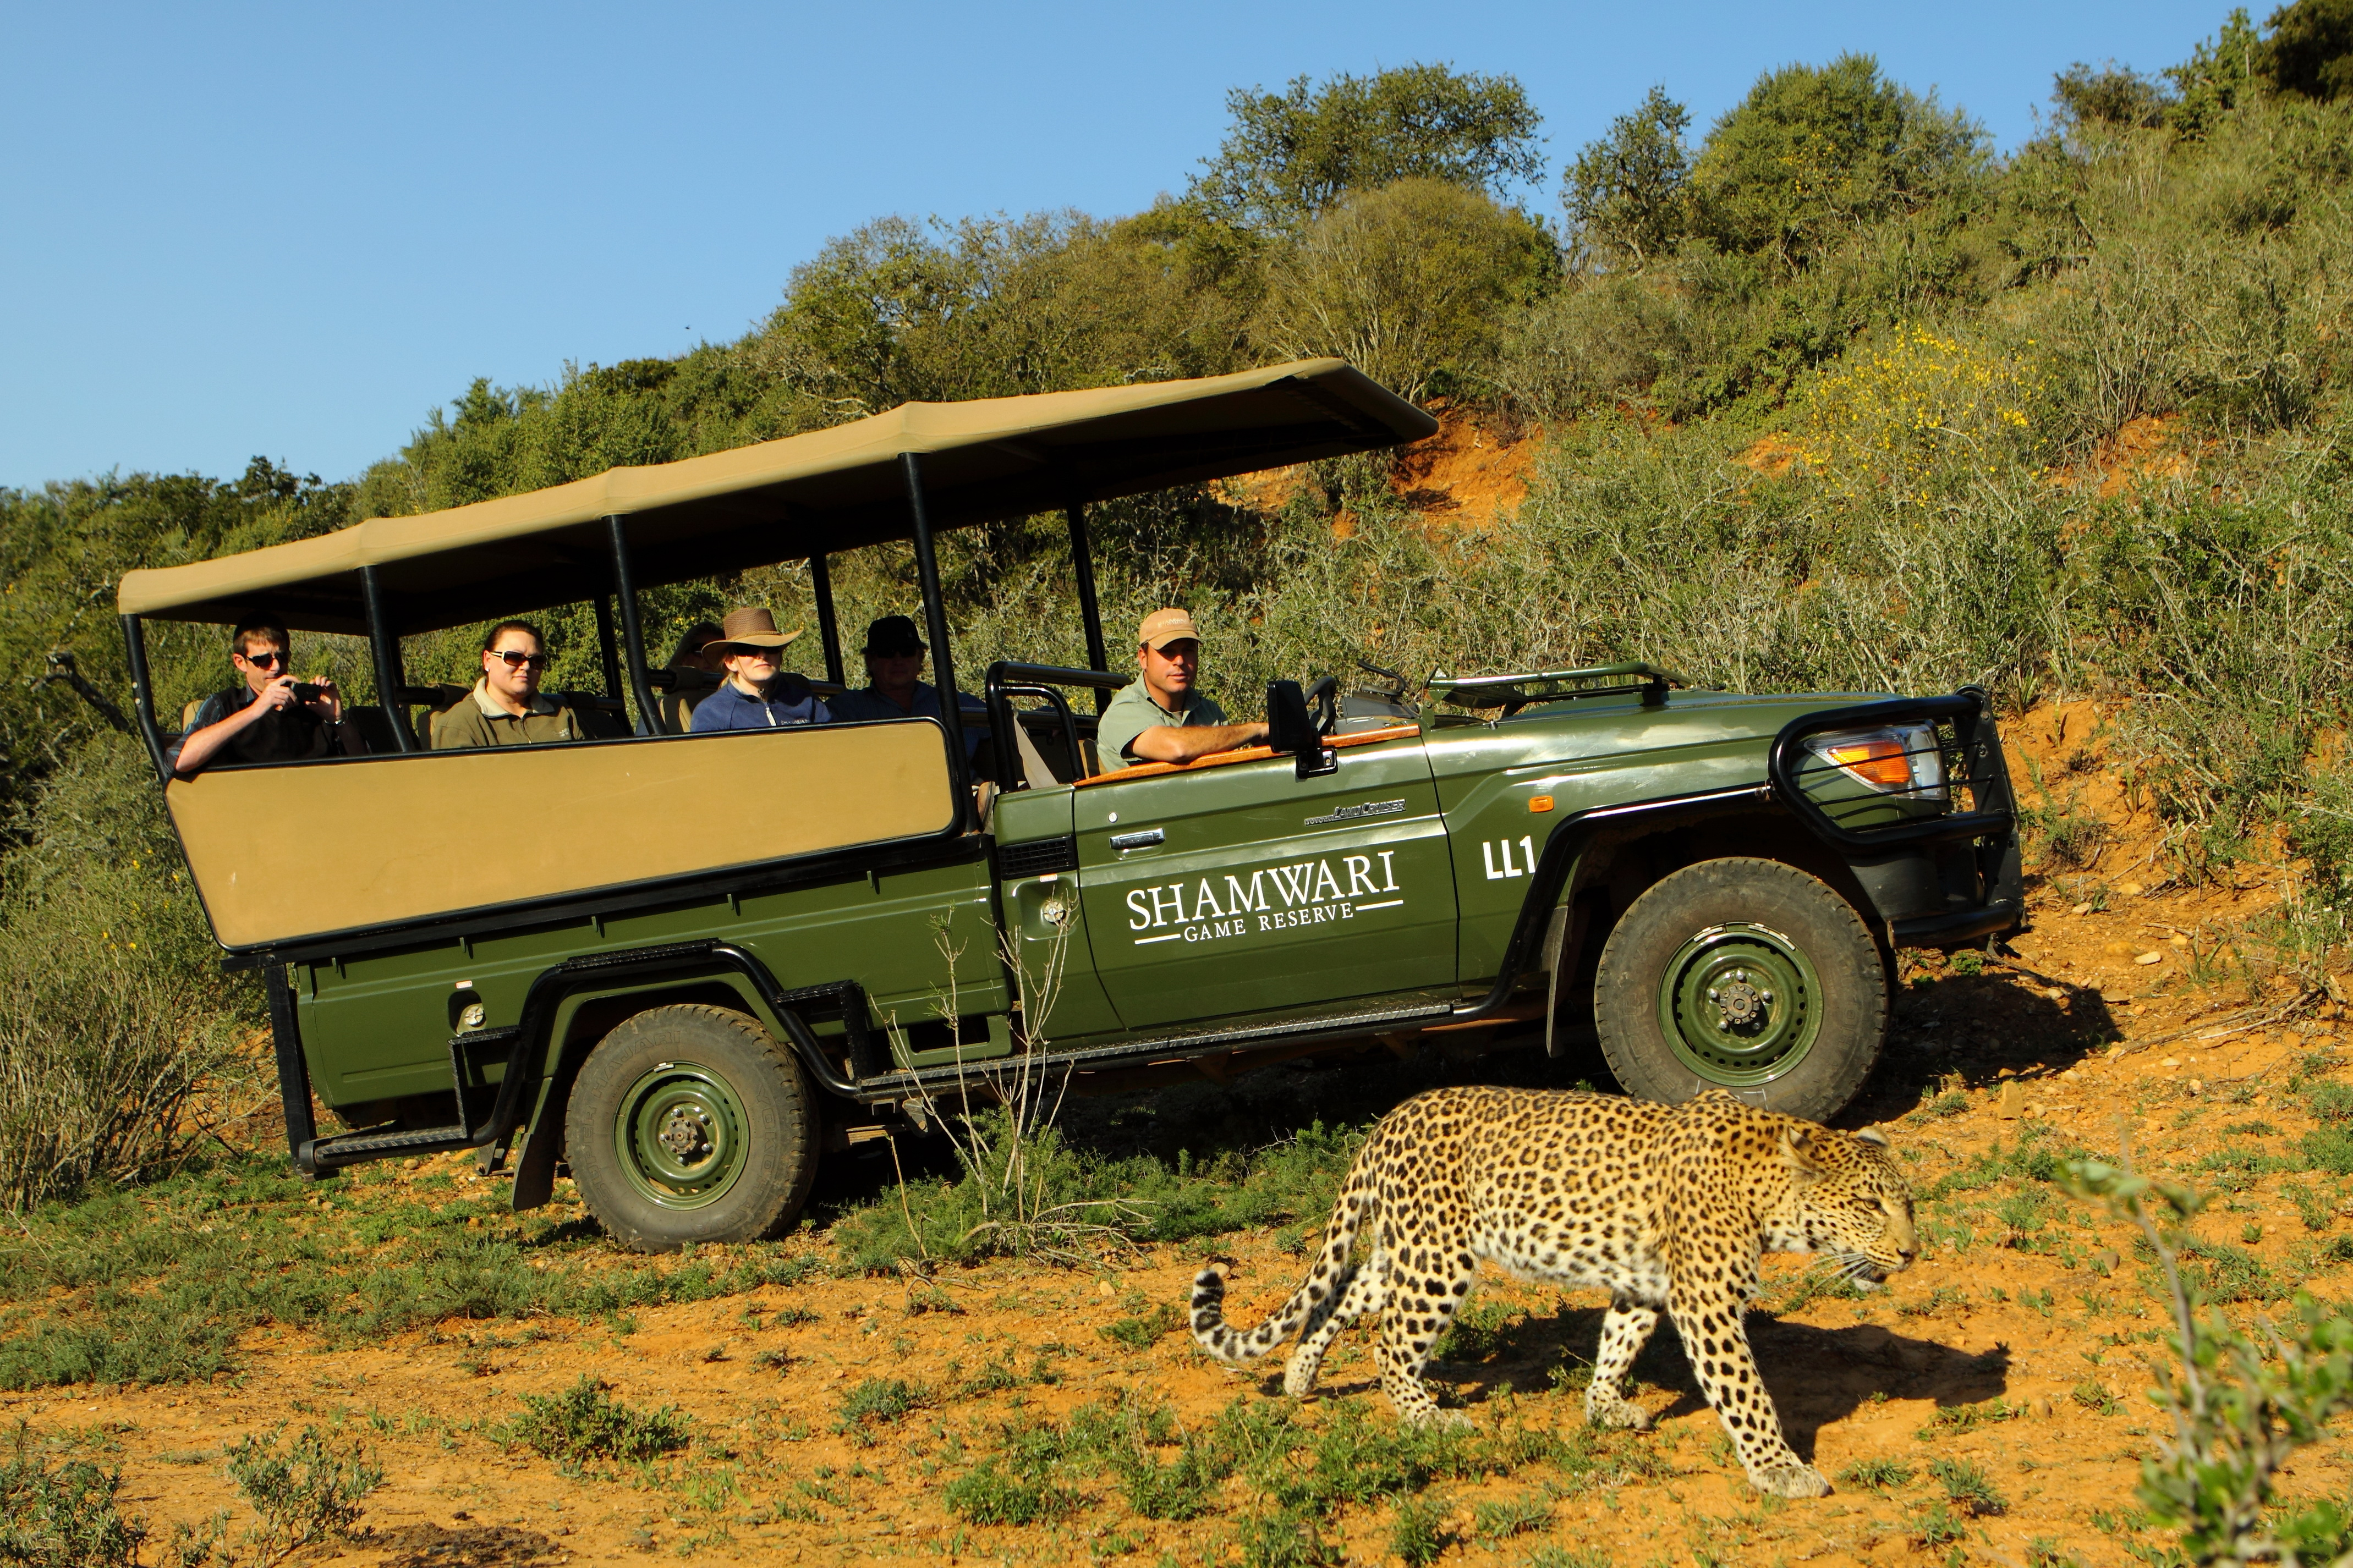 Game Lodge specials Specials in Game Lodge from the Game Lodge experts. Best value holidays from AfricaStay.